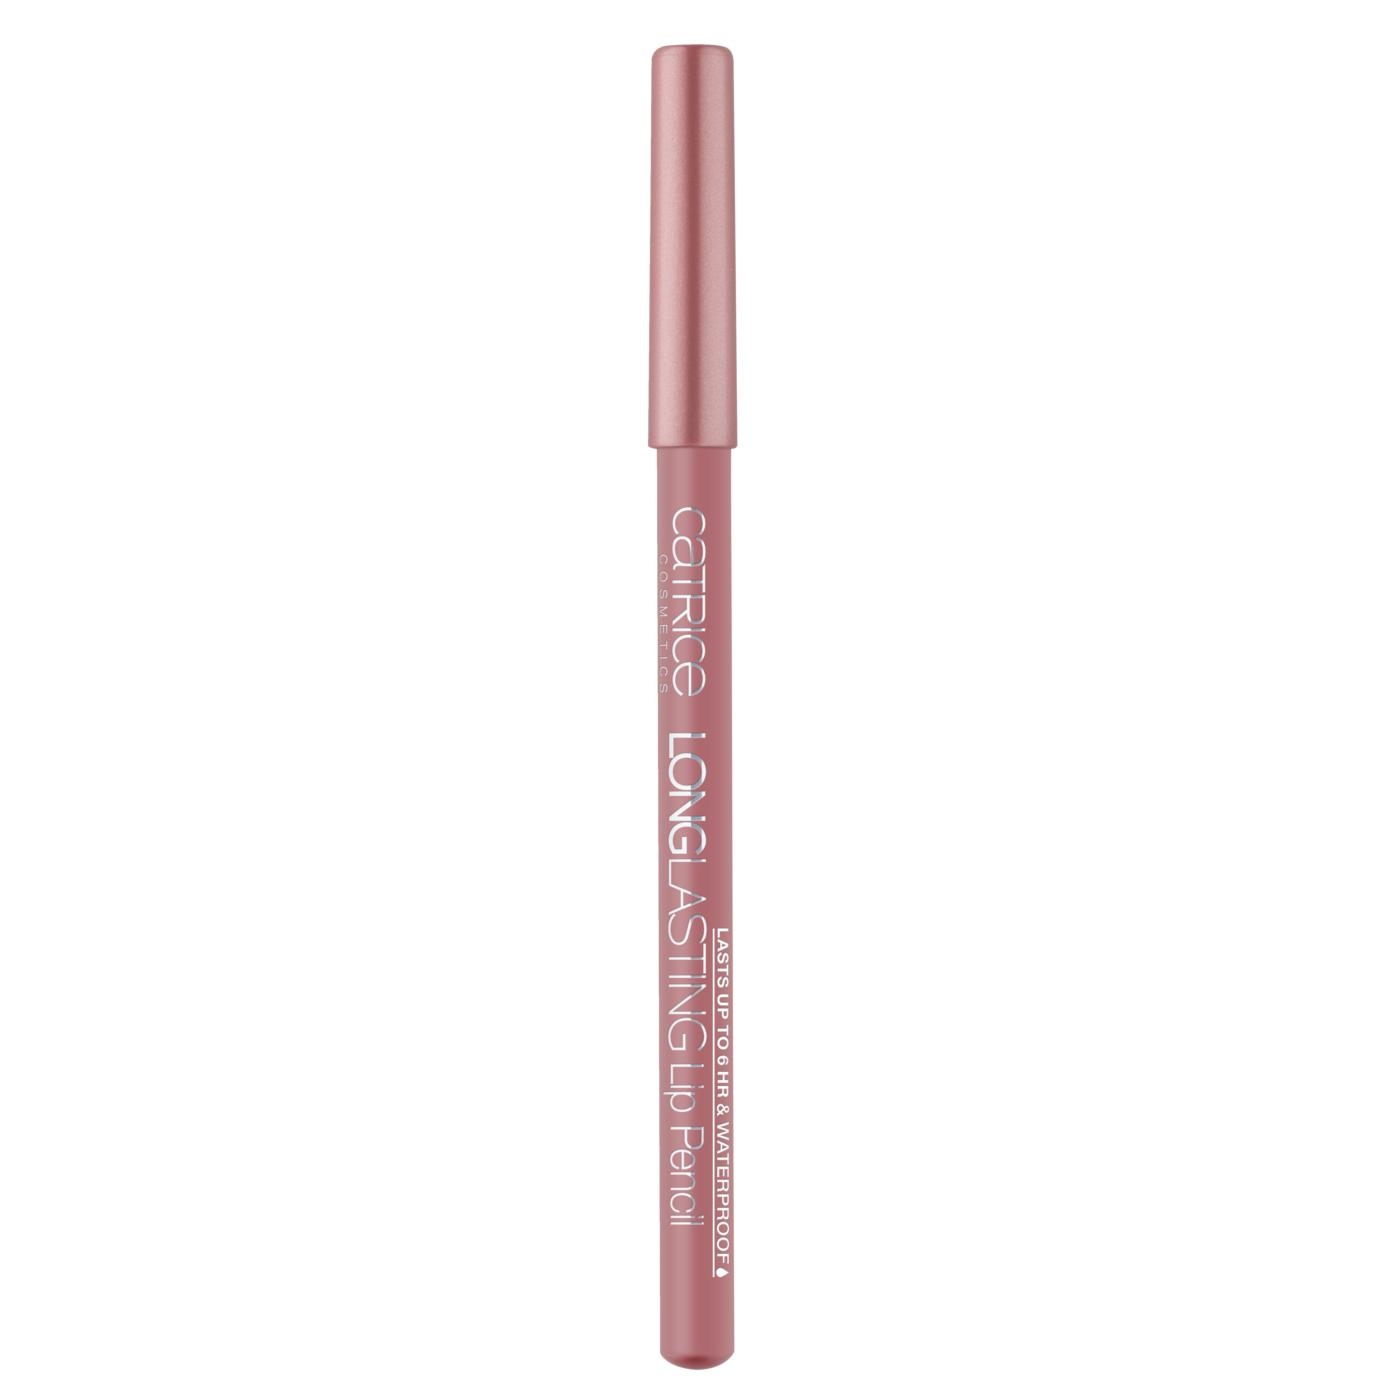 Catrice Longlasting Lip Pencil 080